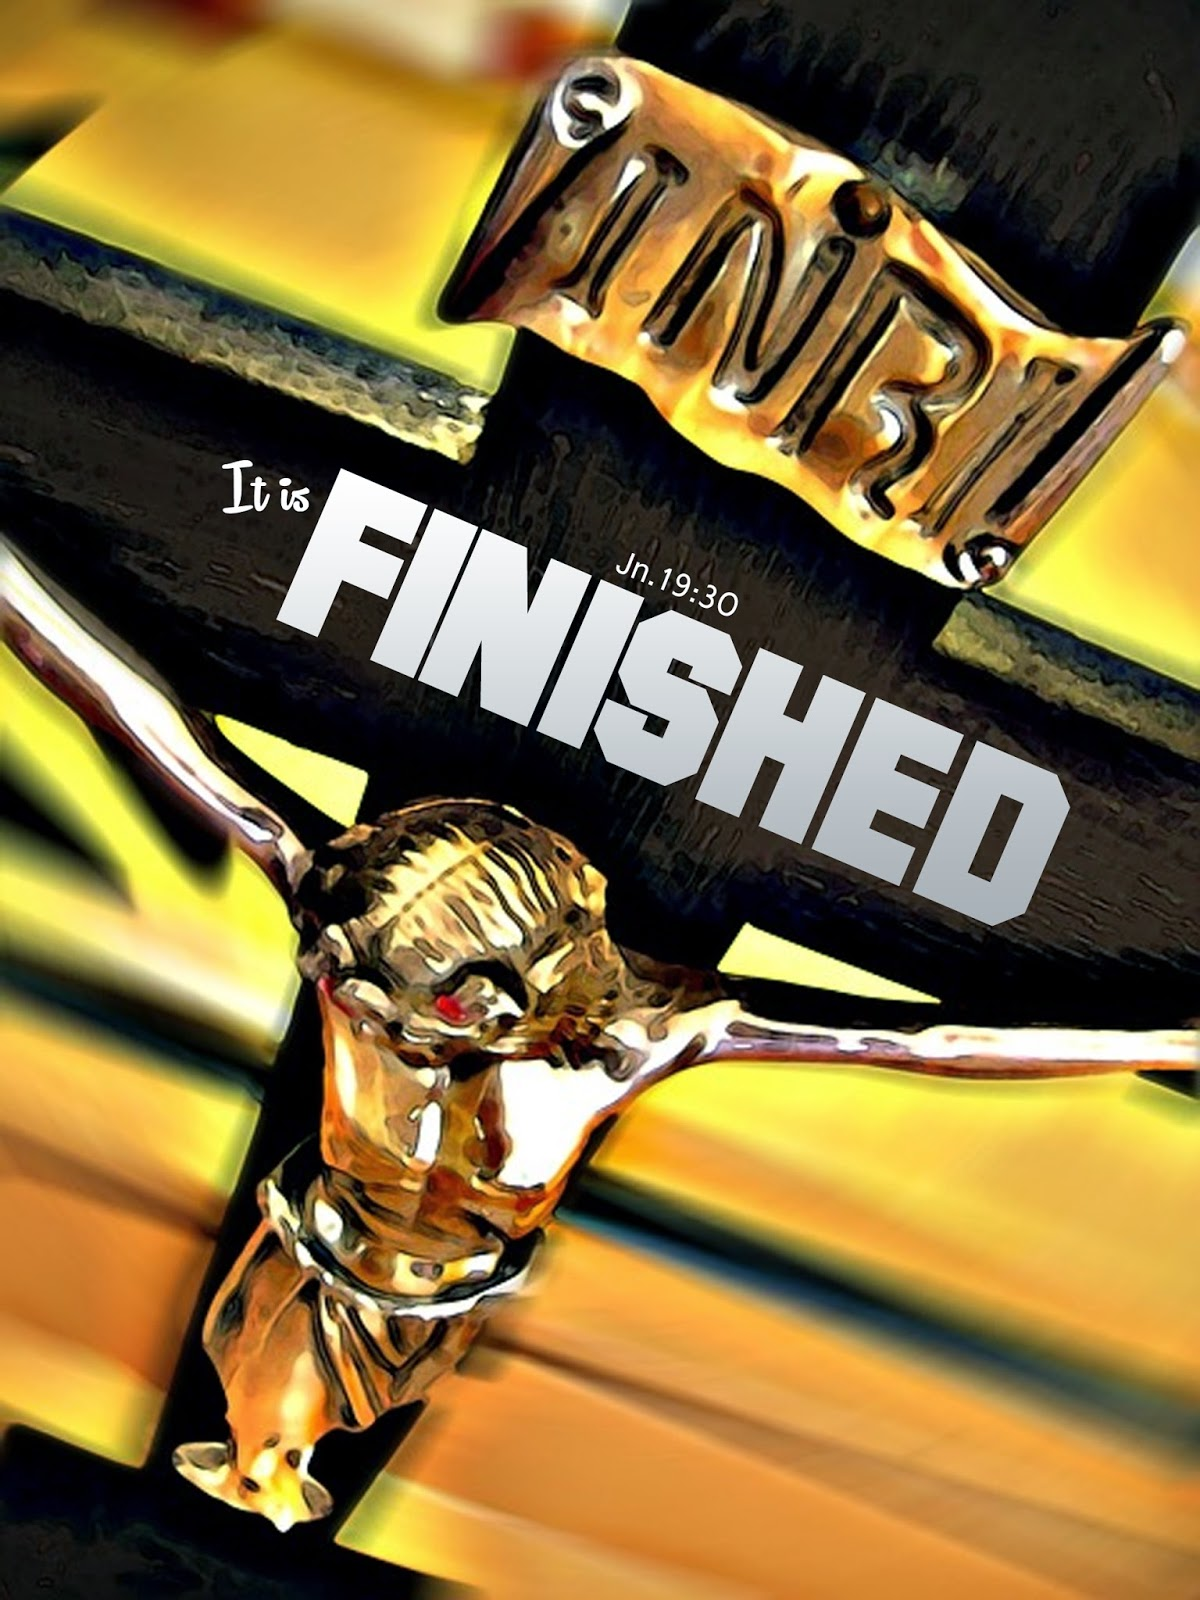 Jn. 19:30 It is Finished